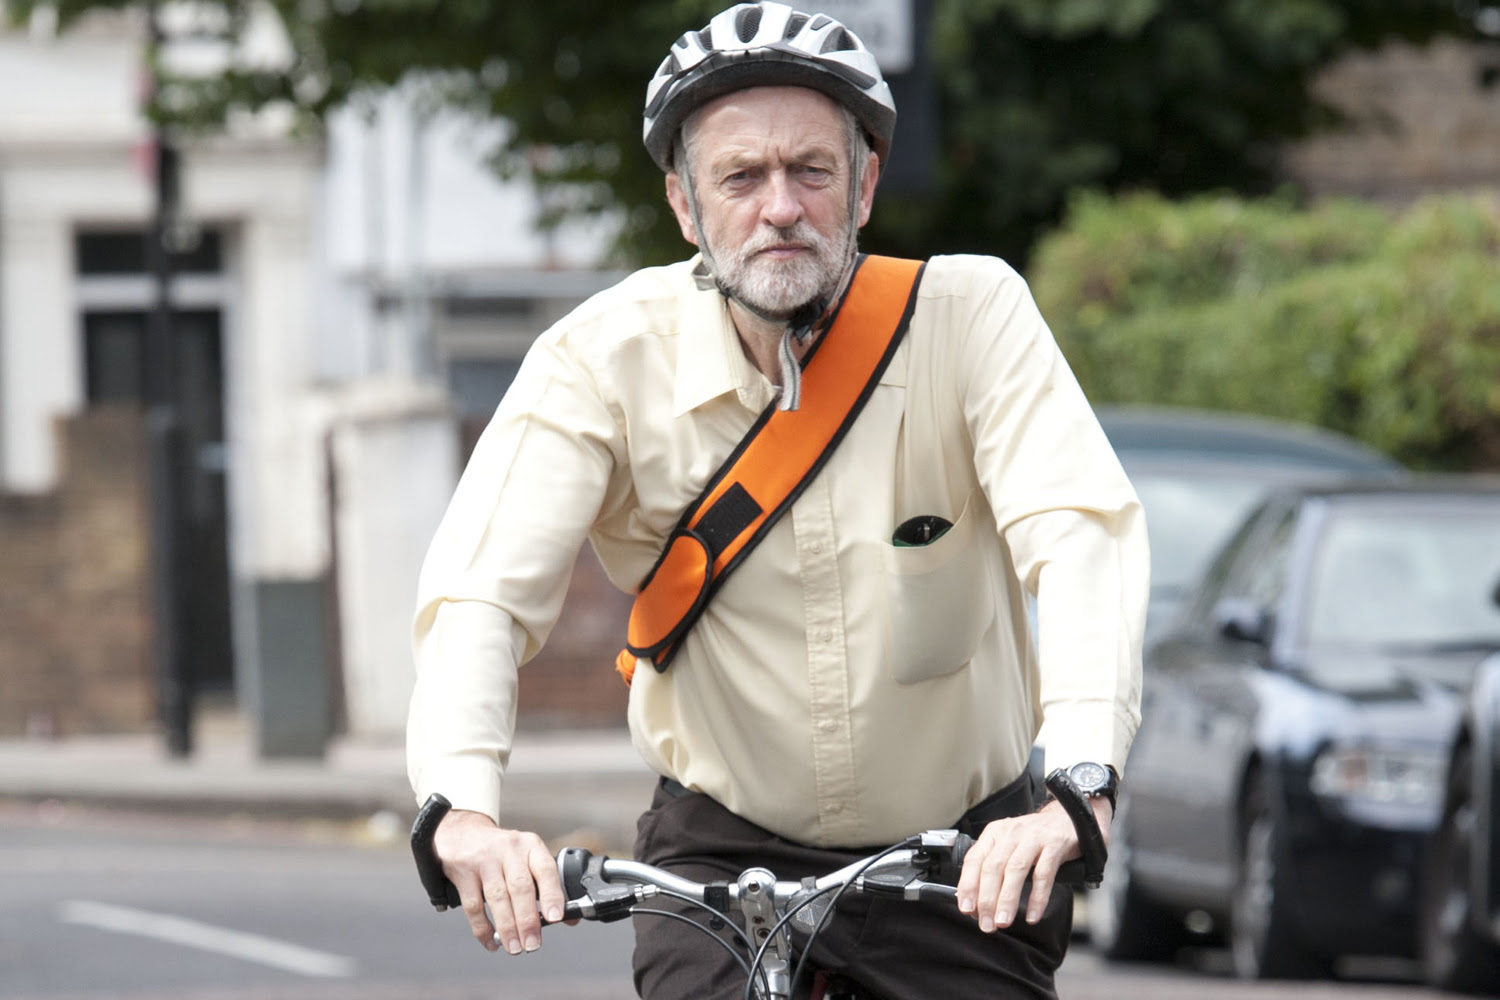 Jeremy Corbyn wears Bike Helmet